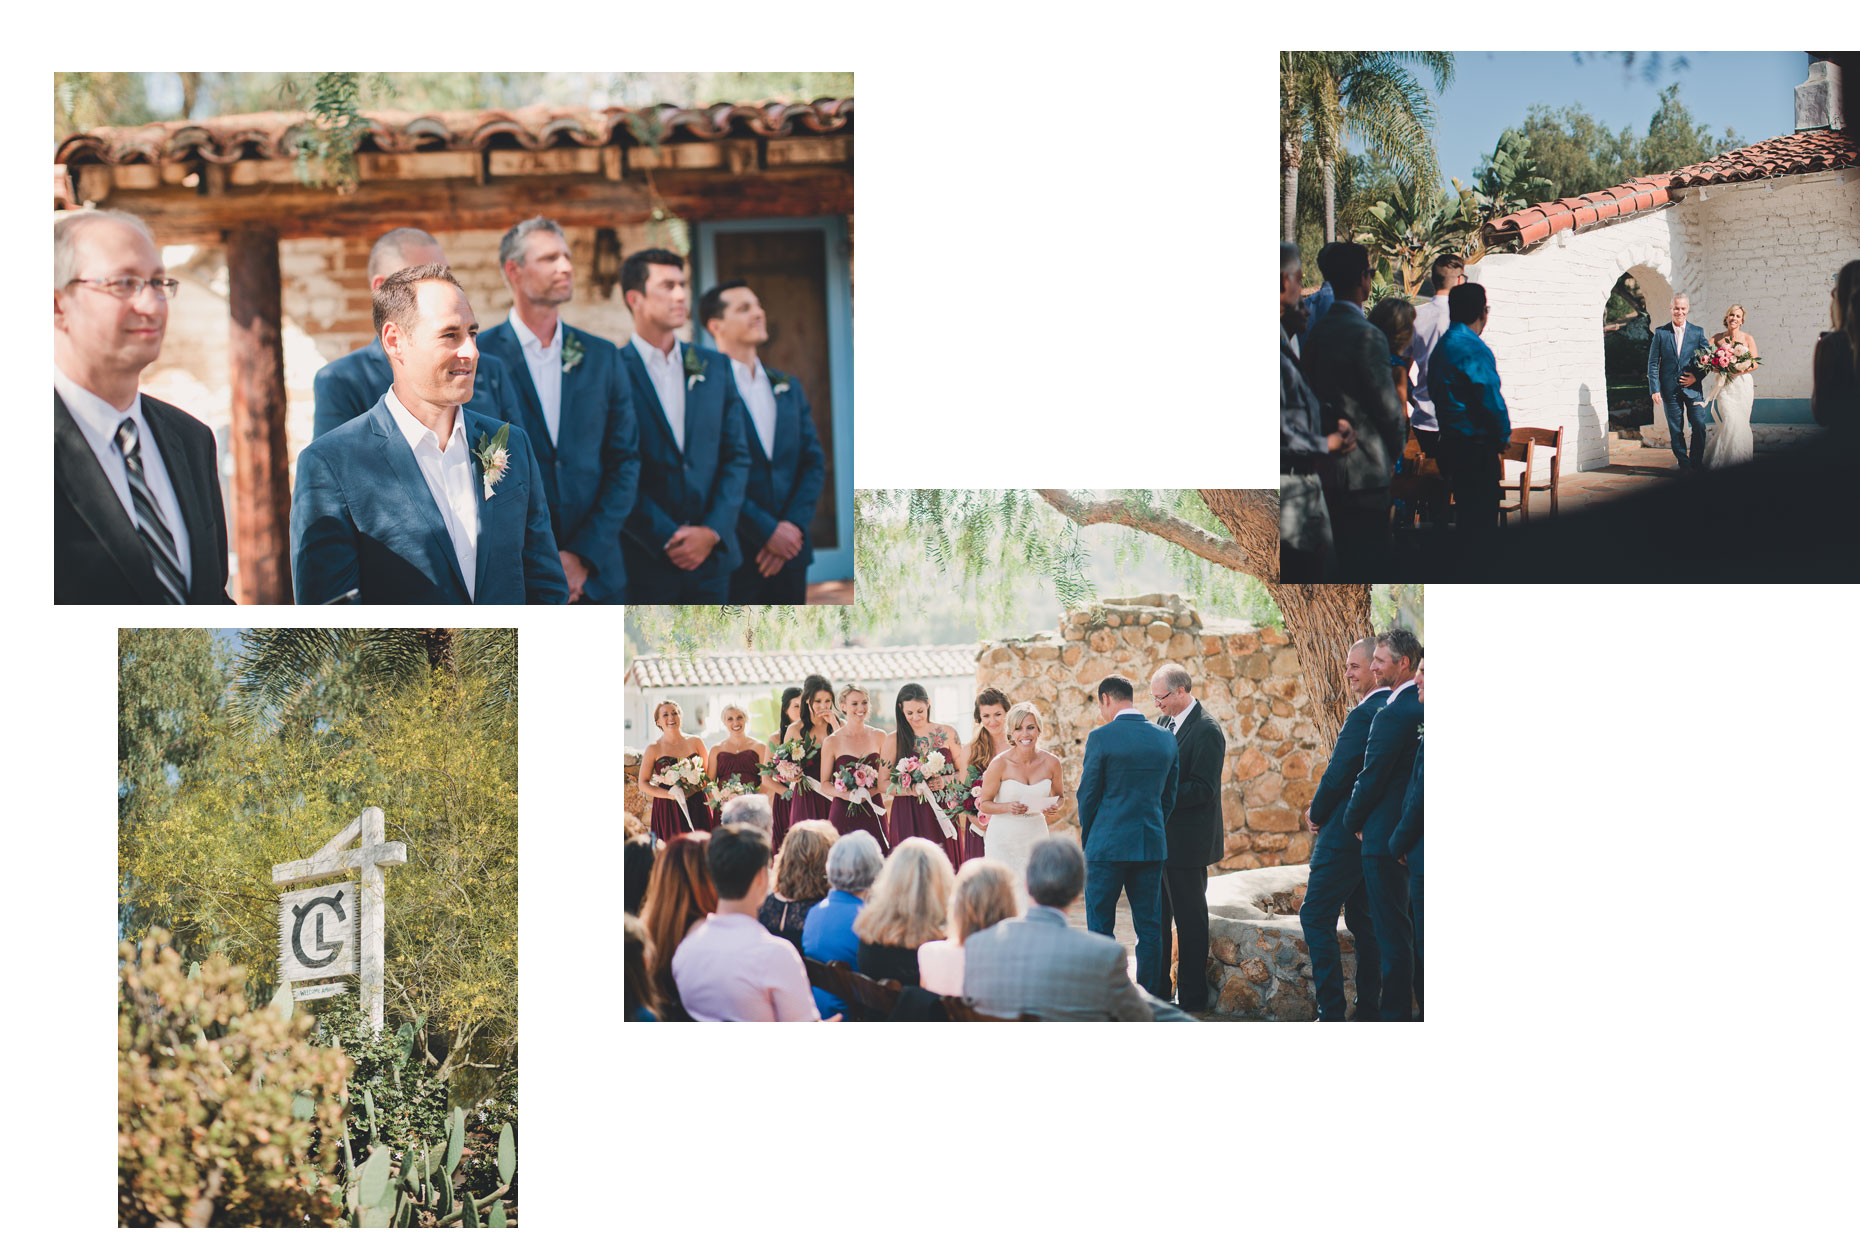 Rustic,-Leo-Carrillo-Ranch-Wedding,-Carlsbad-wedding-photographer,-rustic-wedding-photographer,-rustic-wedding,-Carlsbad,-leo-carrillo-wedding-photographer